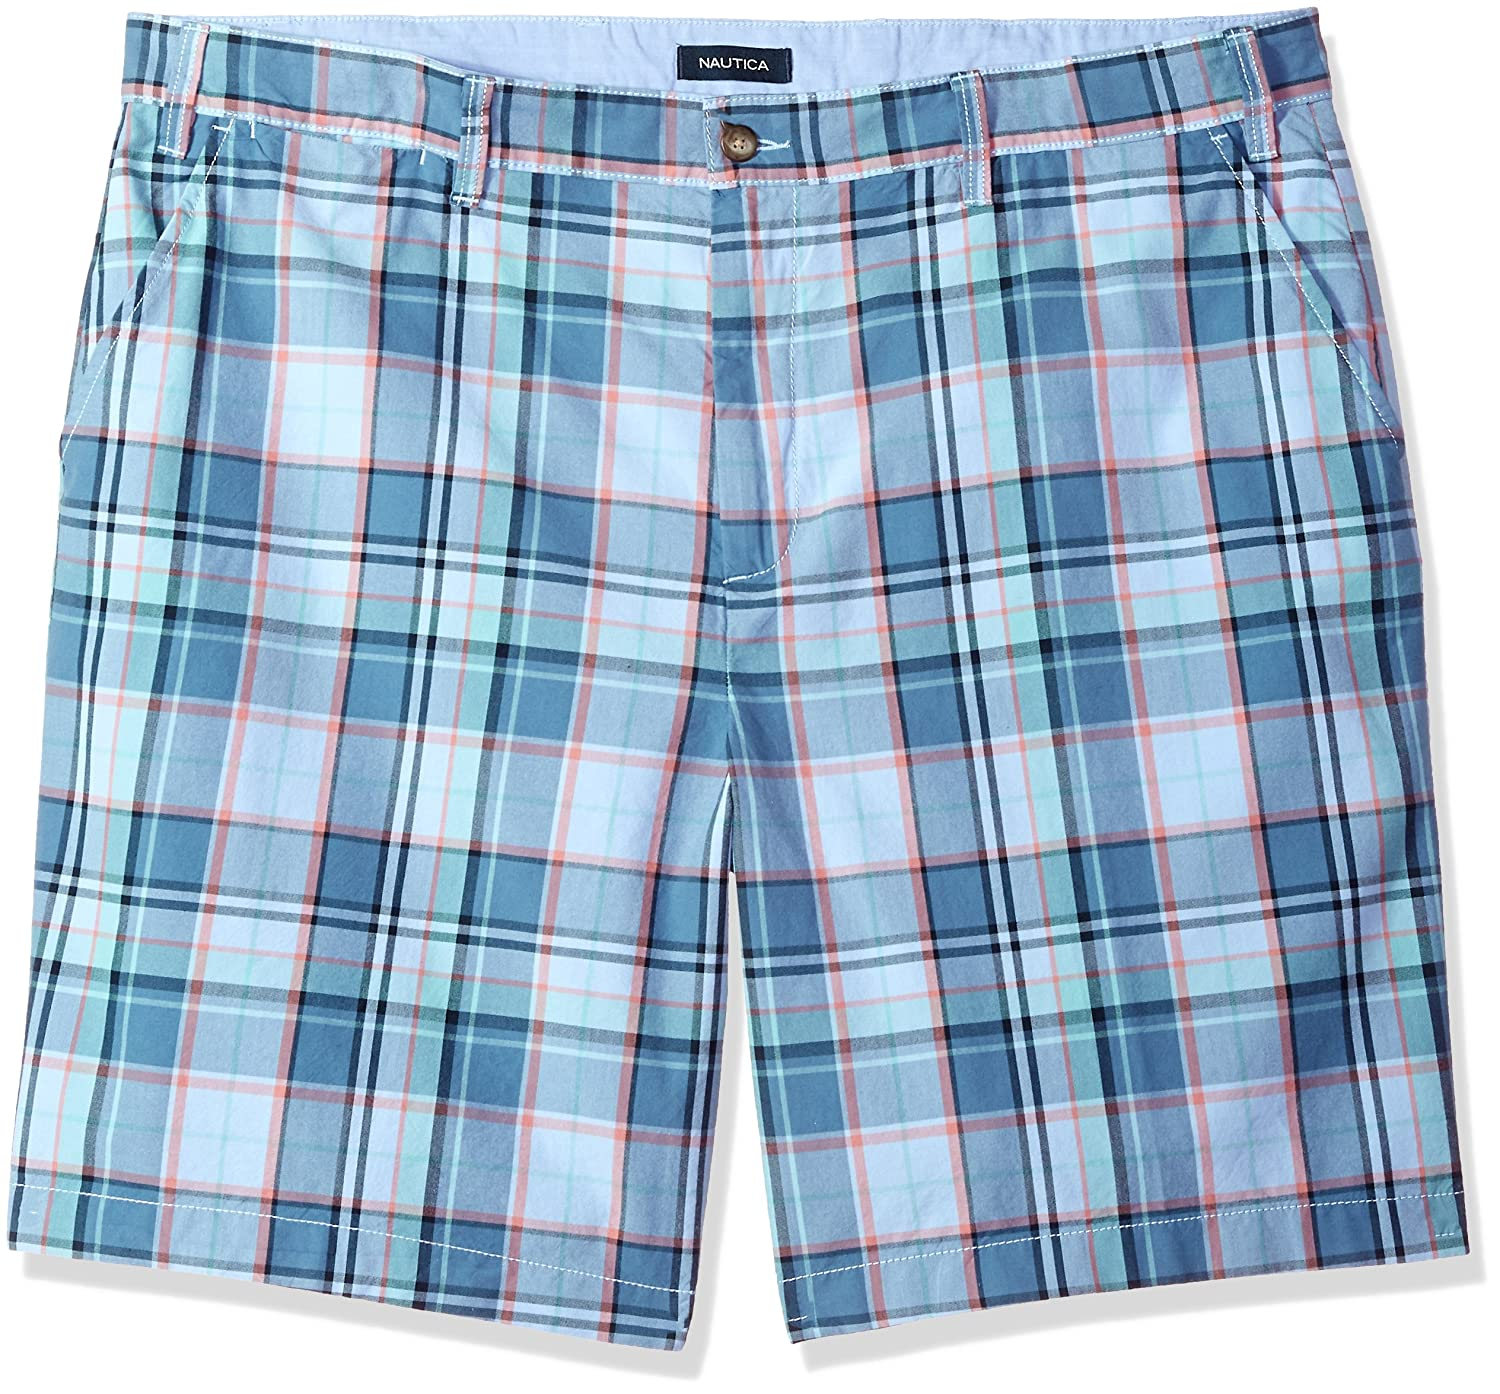 Nautica Men's Big and Tall Cotton Twill Flat Front Chino Deck Short -